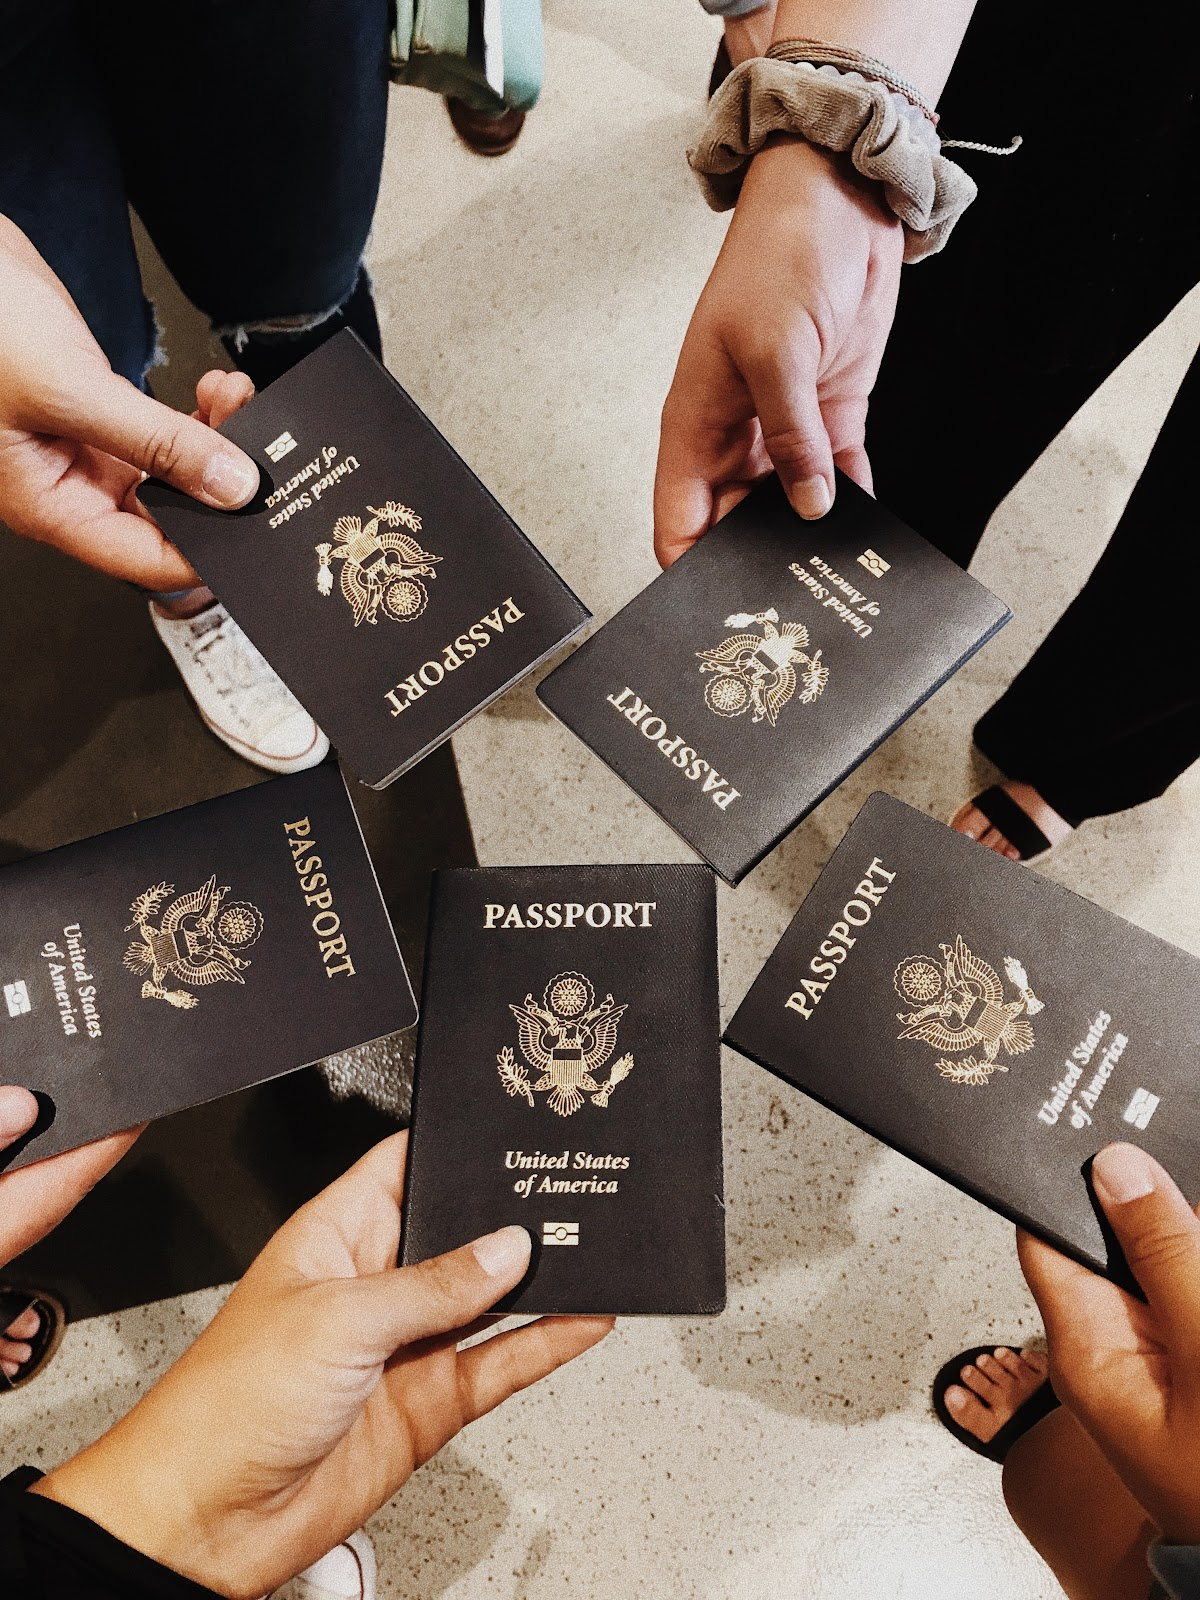 Passports are required to study abroad